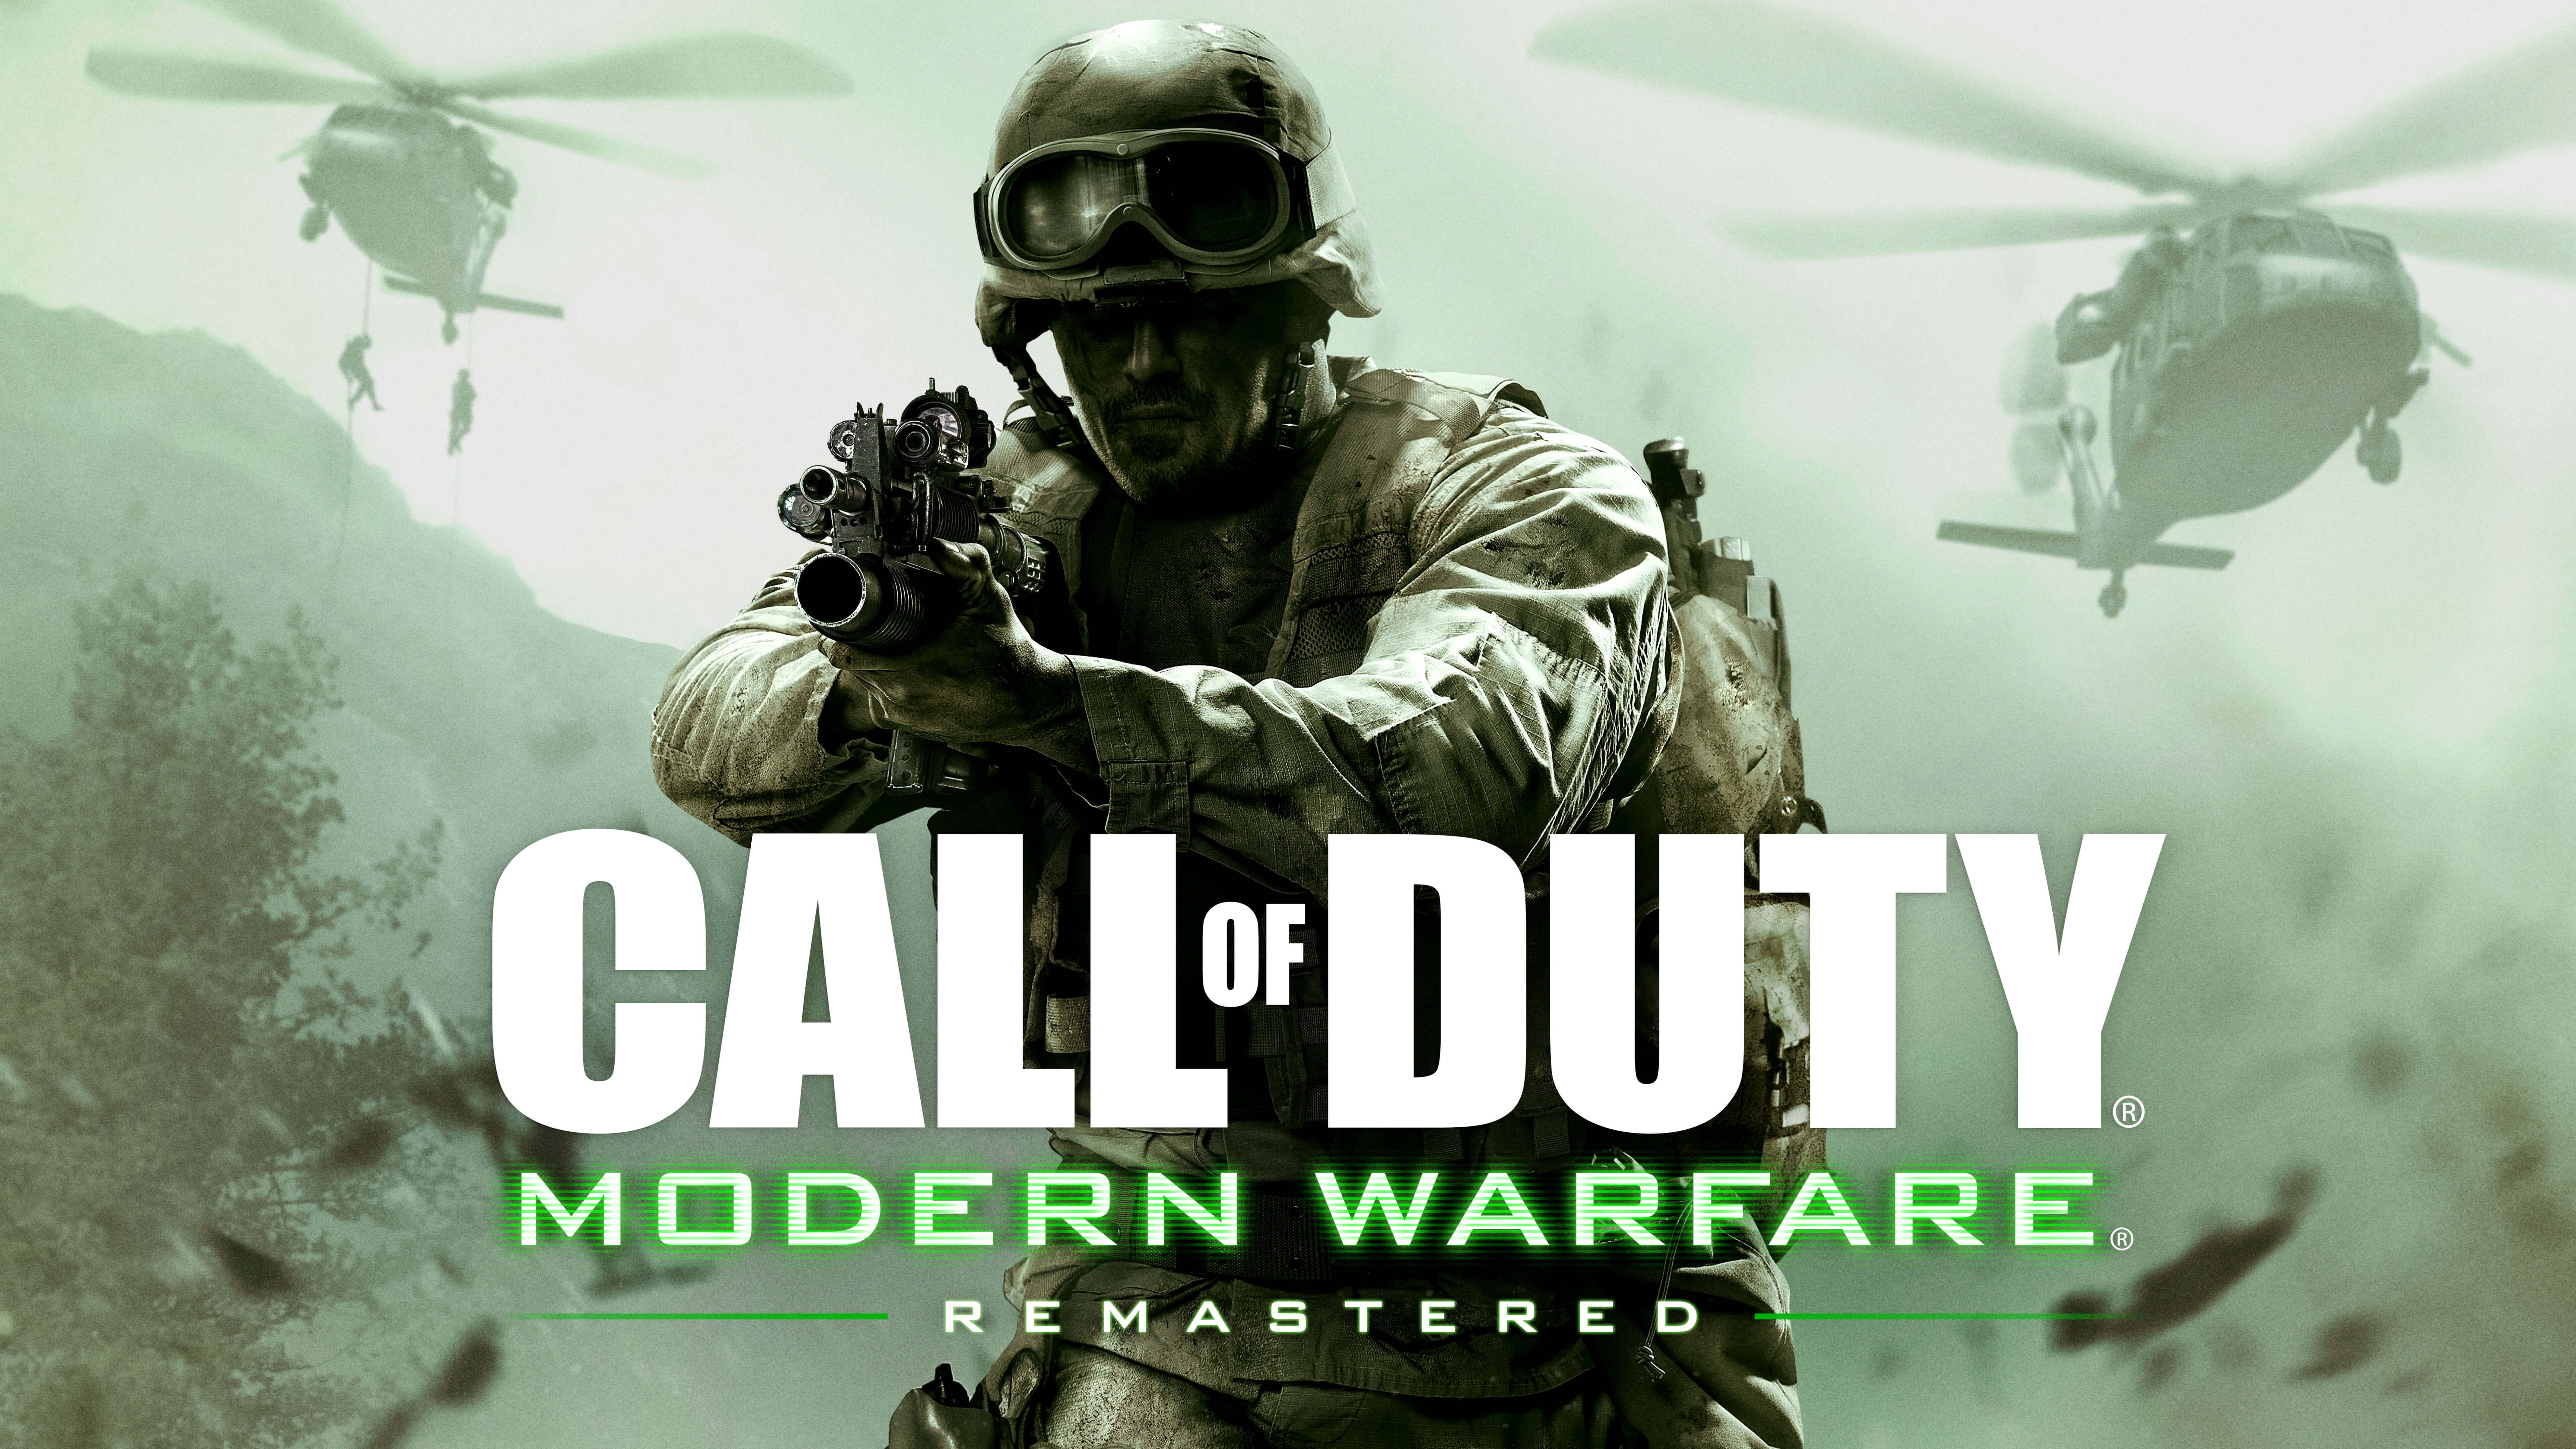 Call of Duty 4 Modern Warfare Remastered UHD 8K Wallpaper | Pixelz